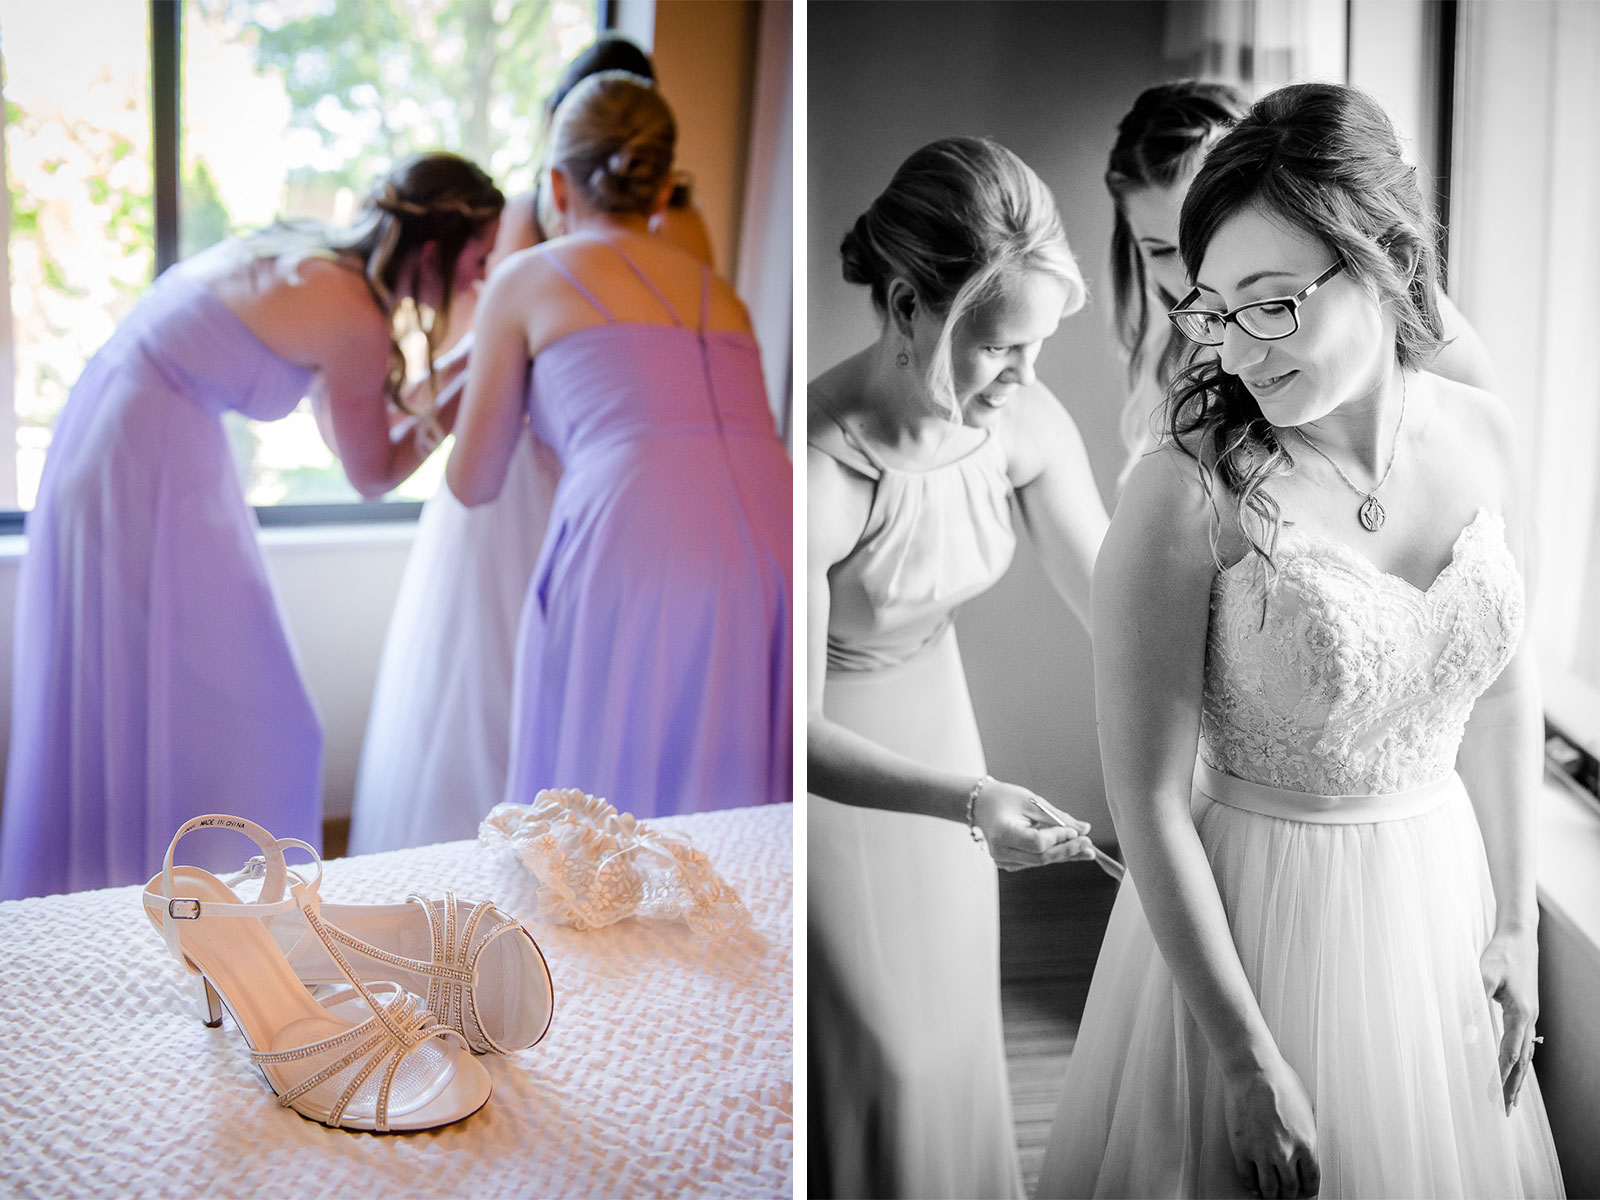 Eric_and_Christy_Photography_Blog_2018_Wed_moments-10-11